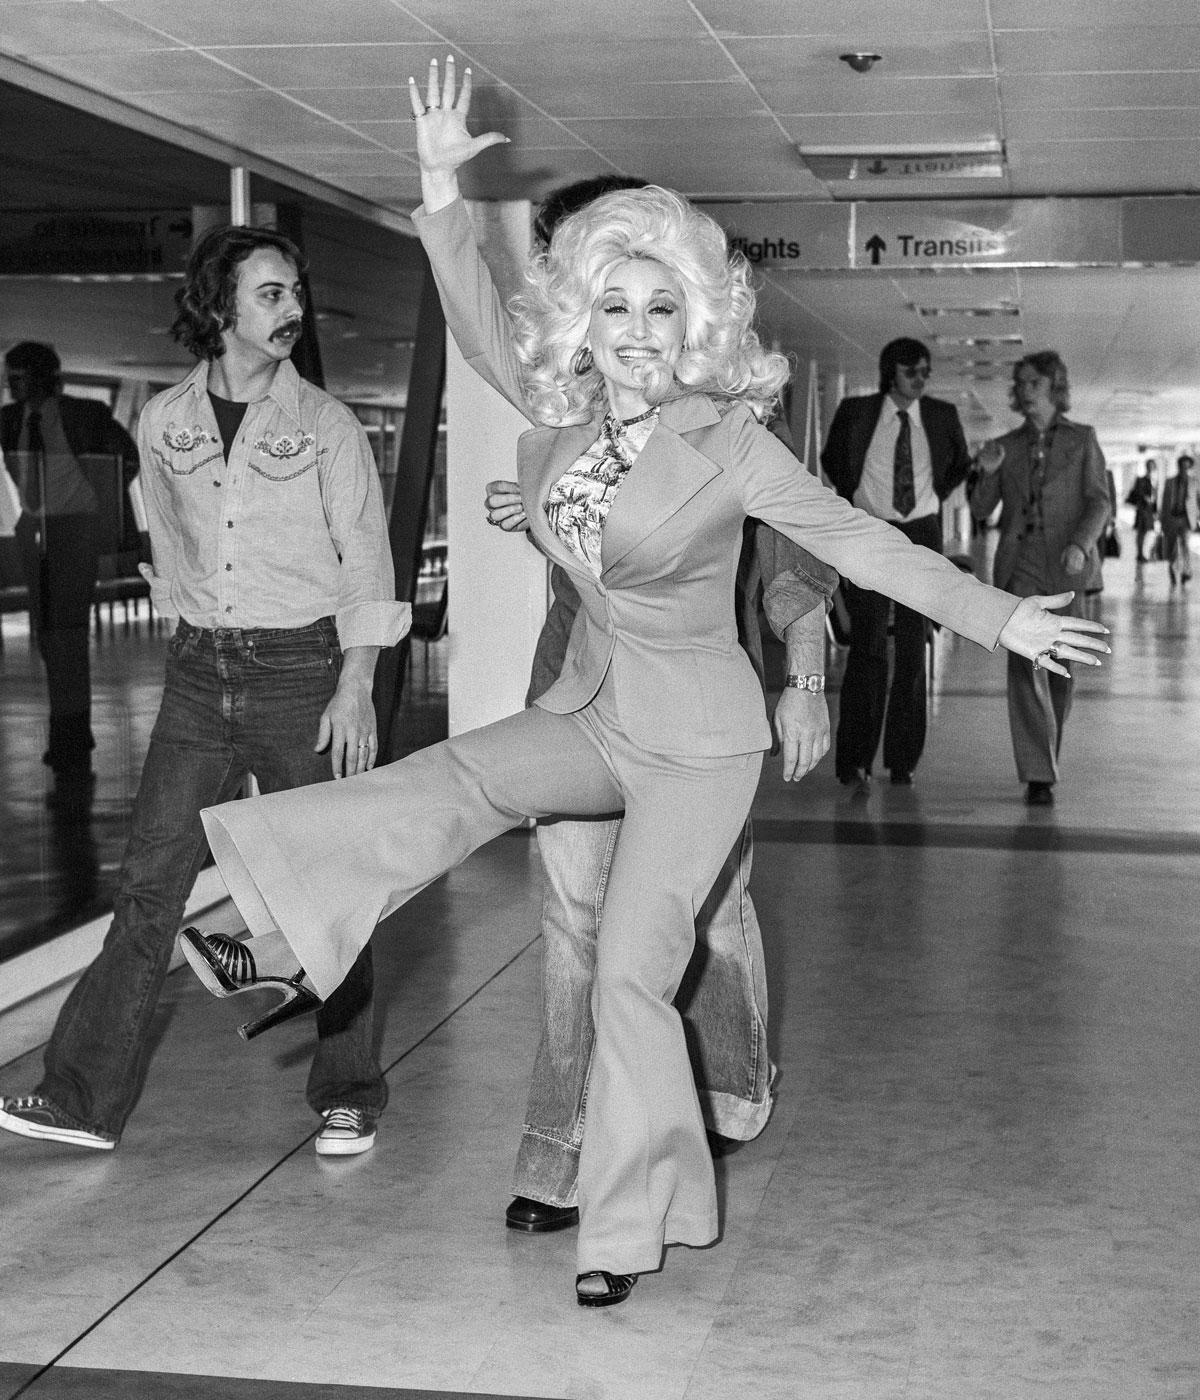 Black and white image of Dolly Parton in a suit doing a kick